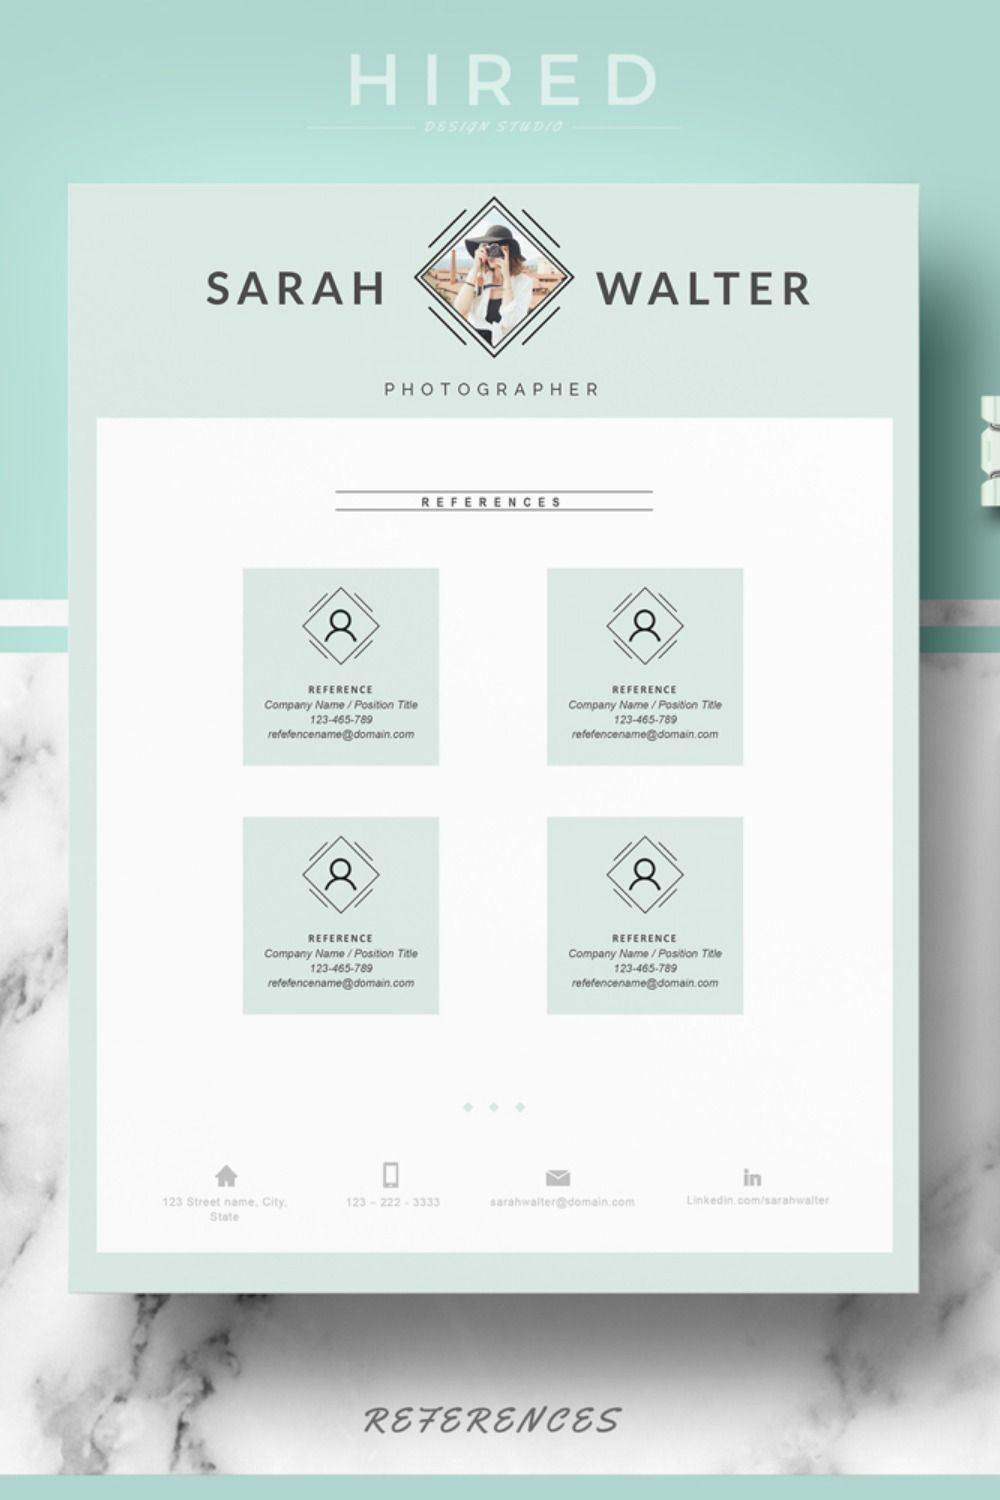 A reference page for a resume should be an a4 page with